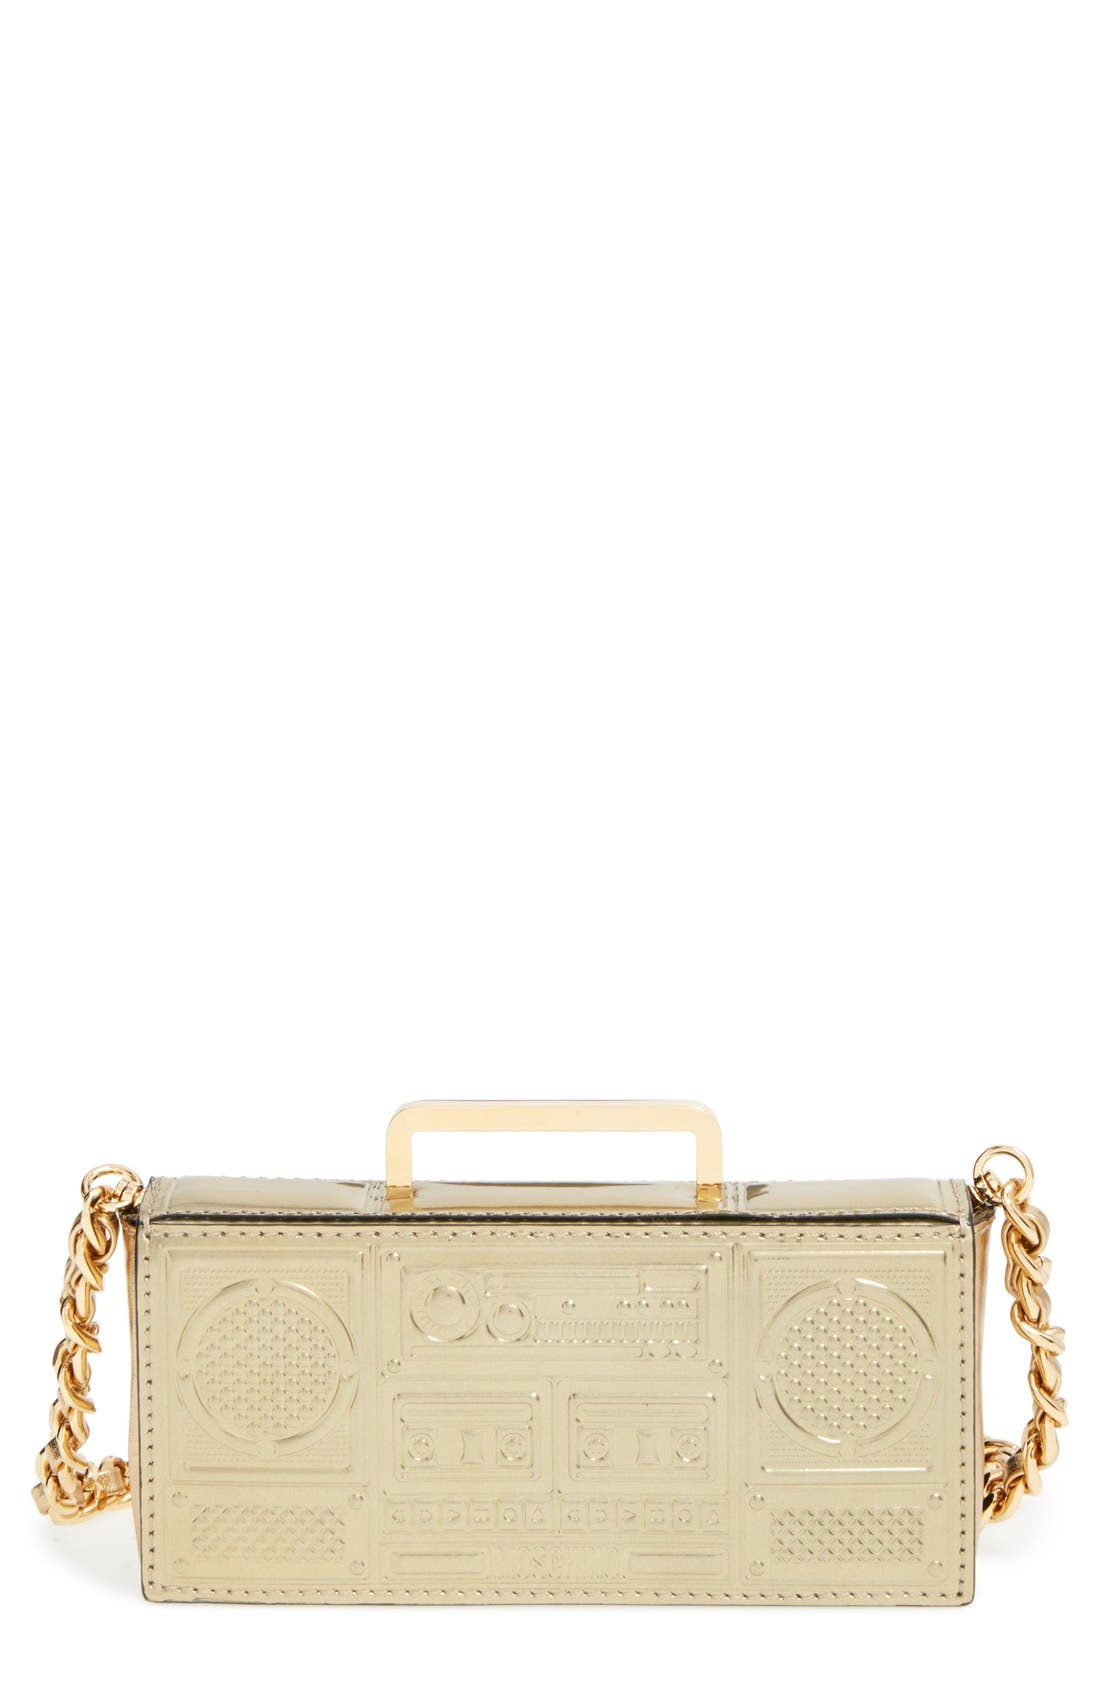 Alternate Image 1 Selected - Moschino 'Mini Boom Box' Crossbody Bag